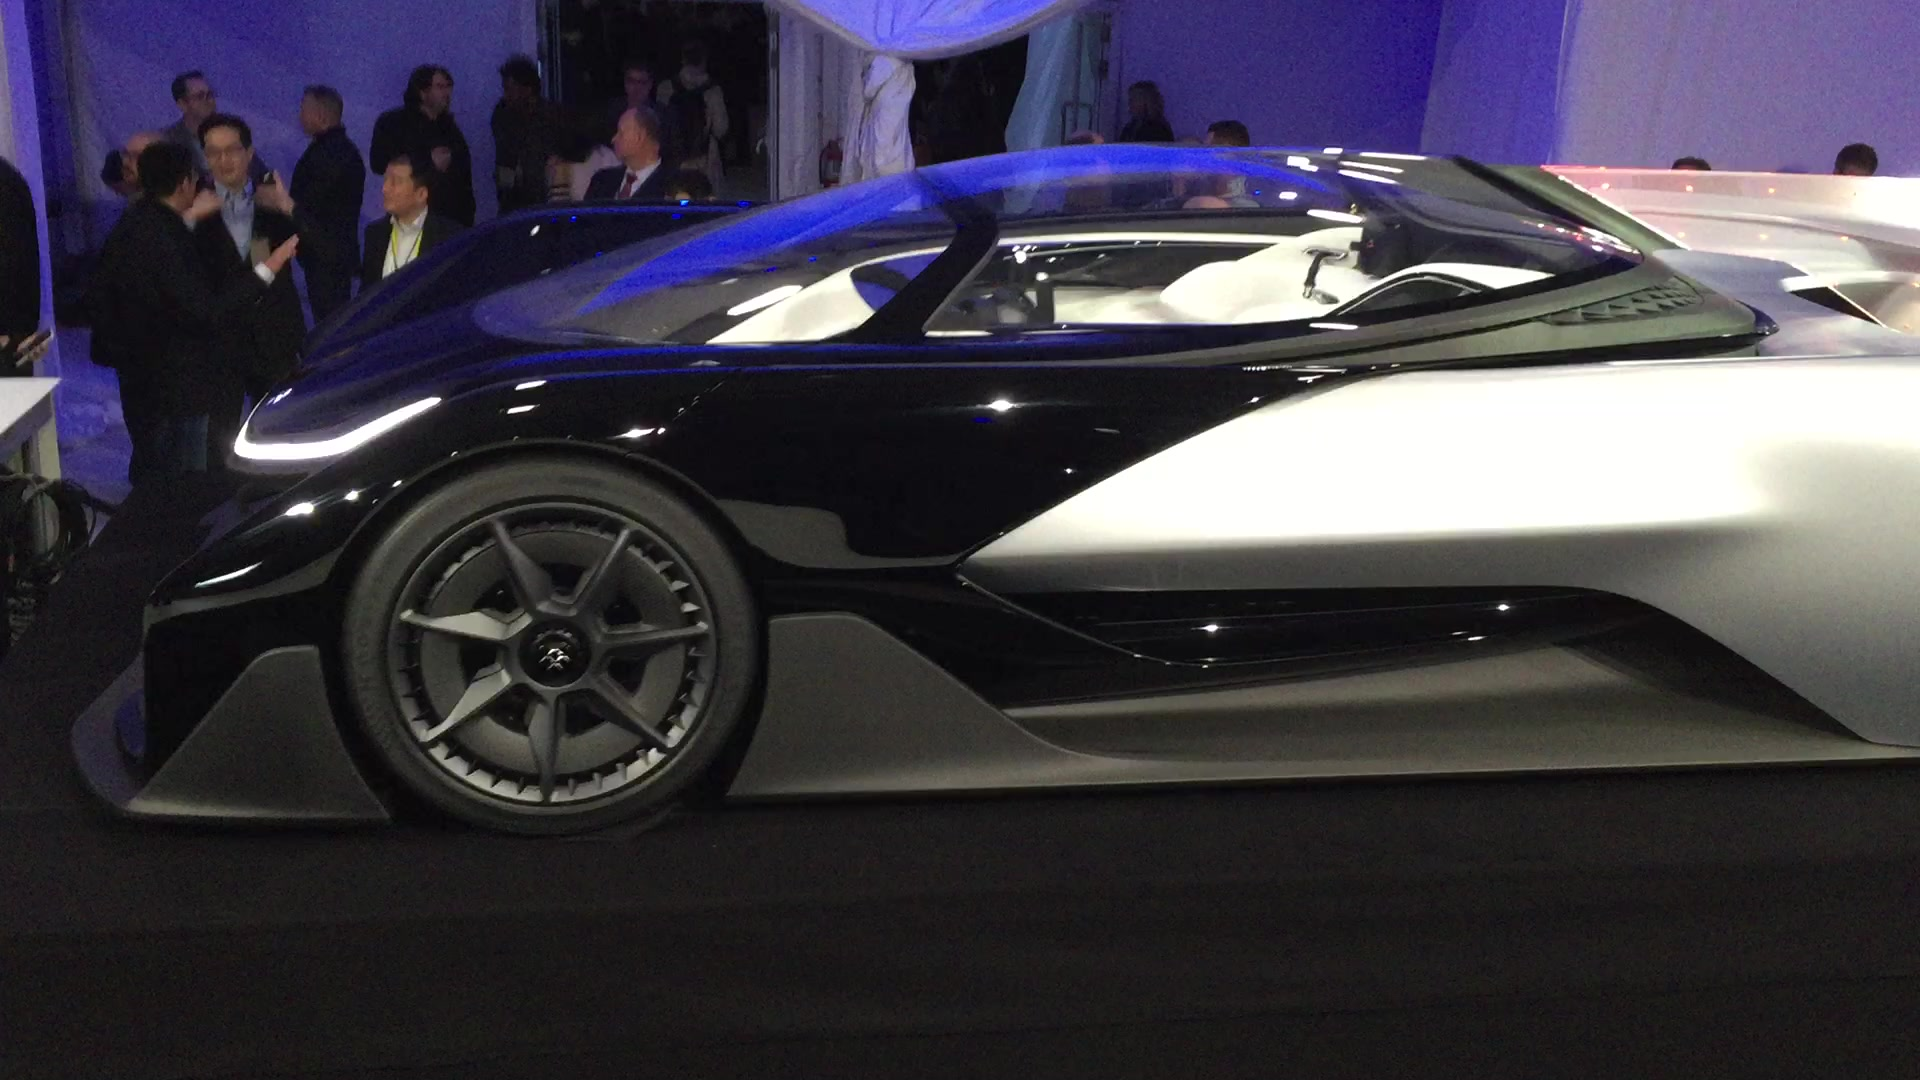 Faraday Future FFZERO1 at CES 2016 | Autoblog Short Cuts